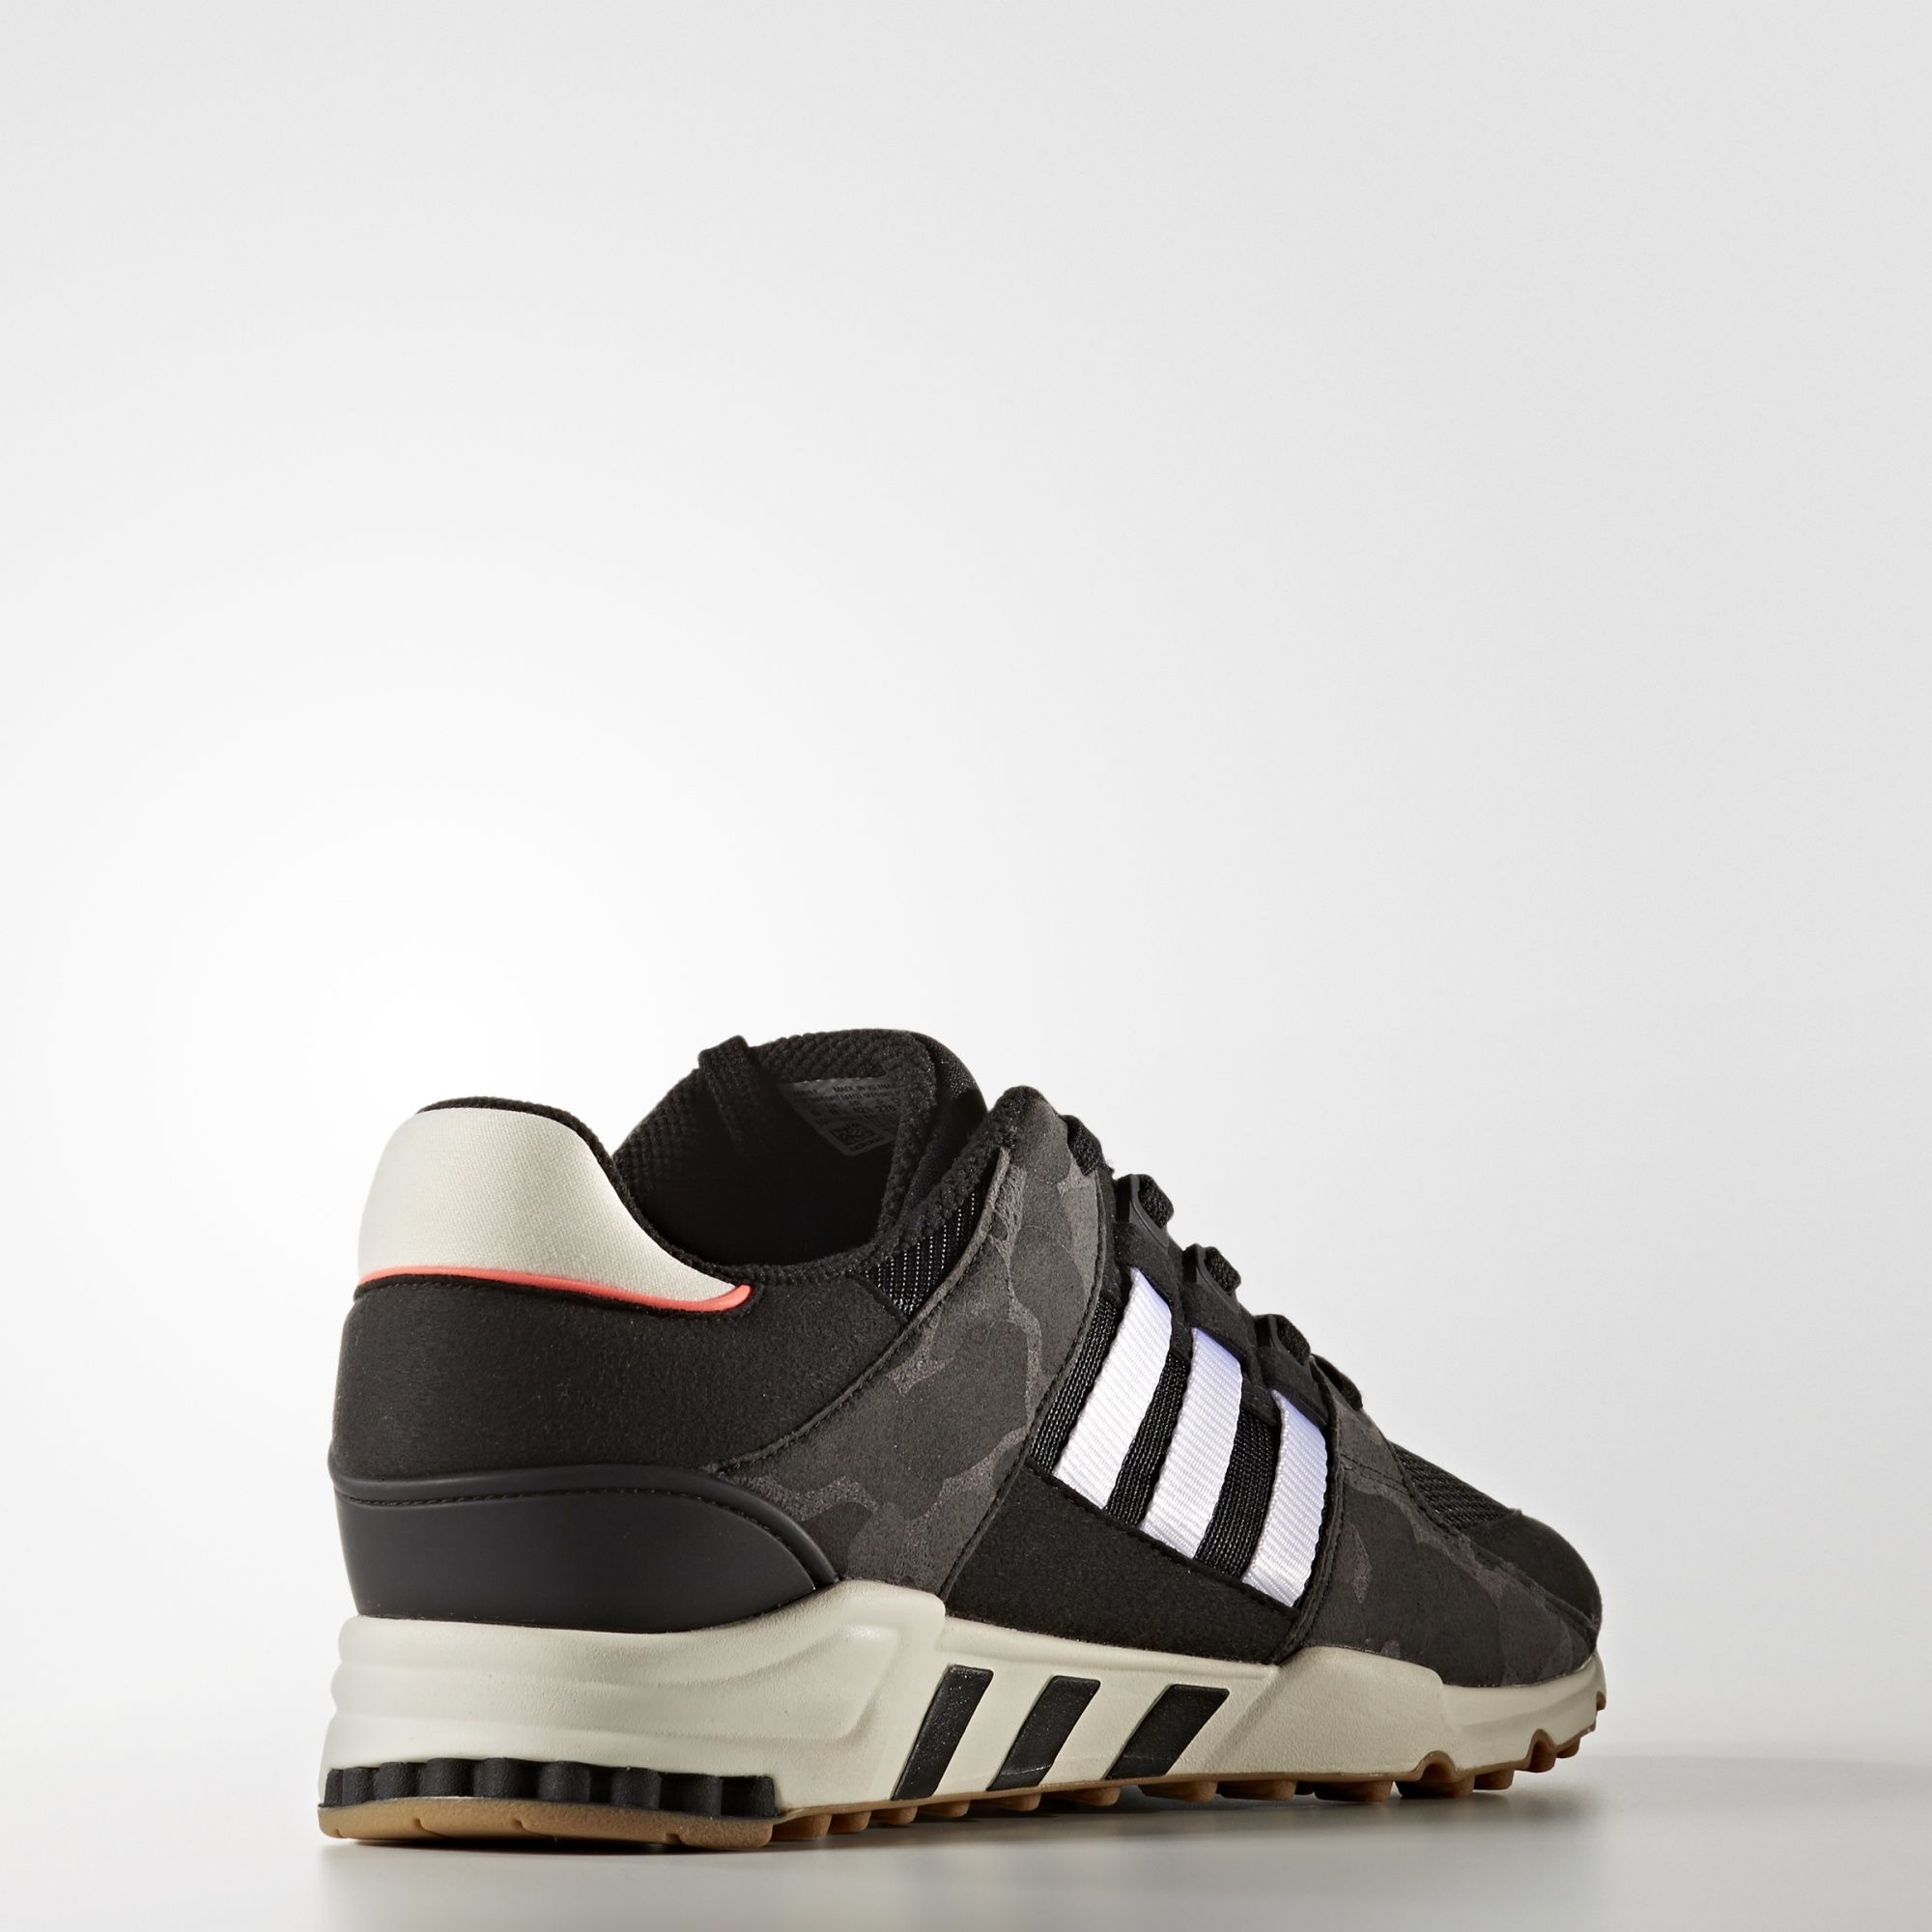 adidas EQT Support RF Black Camo BB1324 3